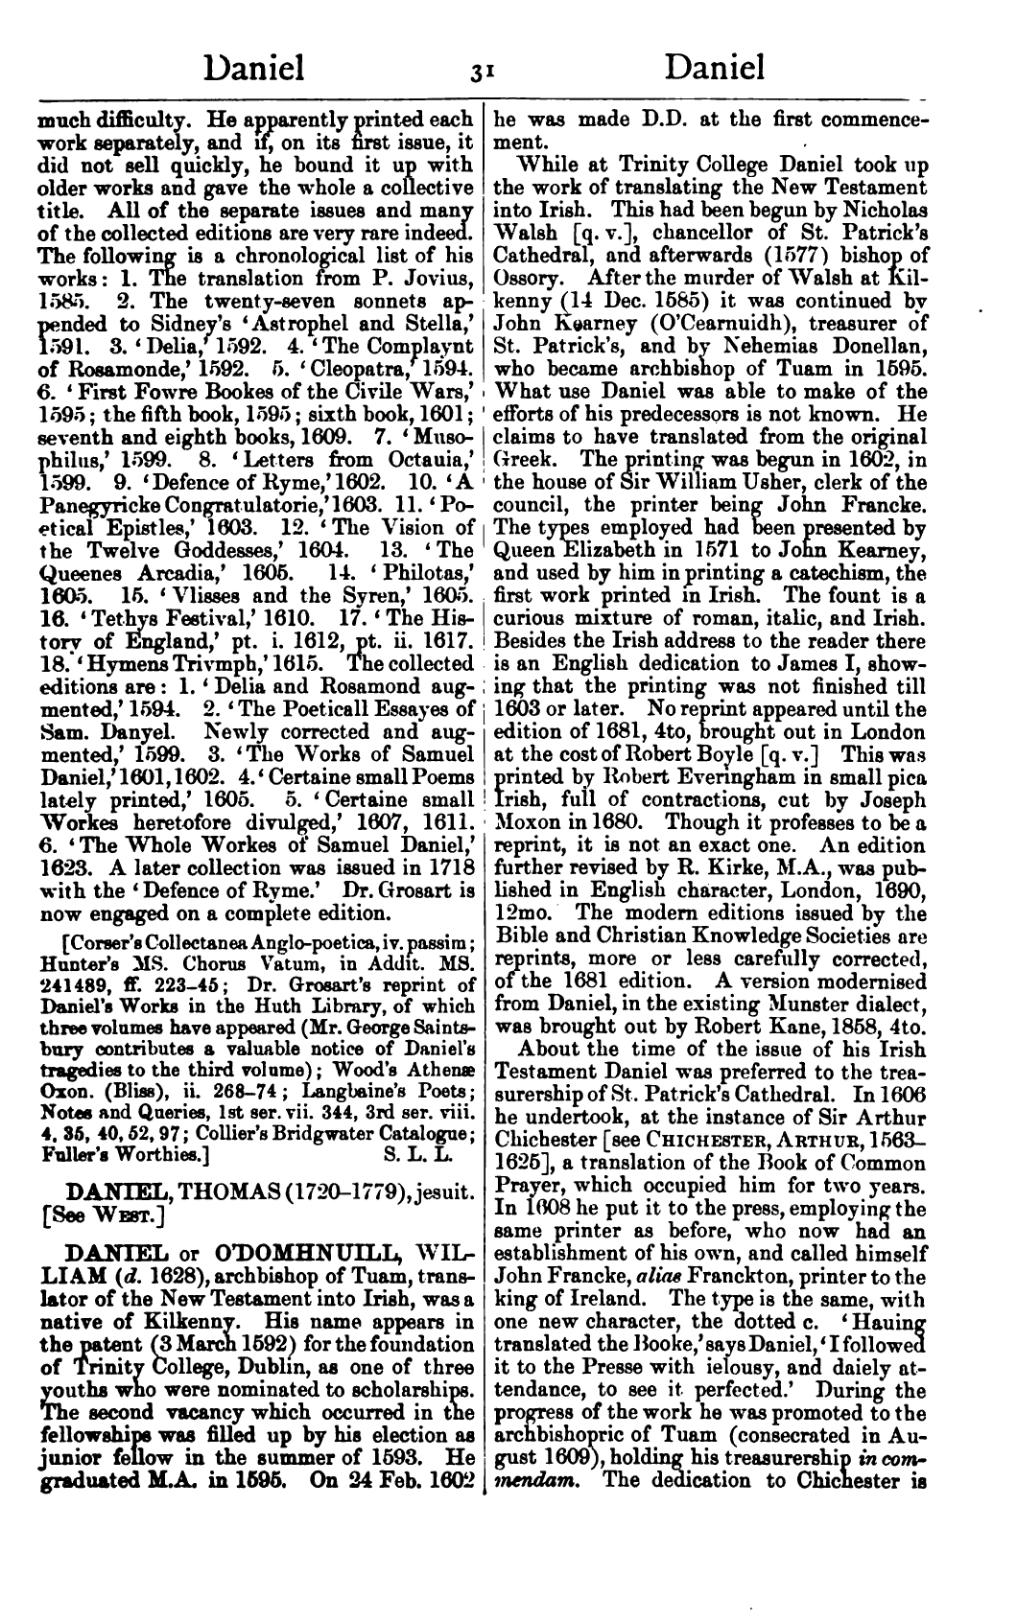 dictionary of national biography ireland